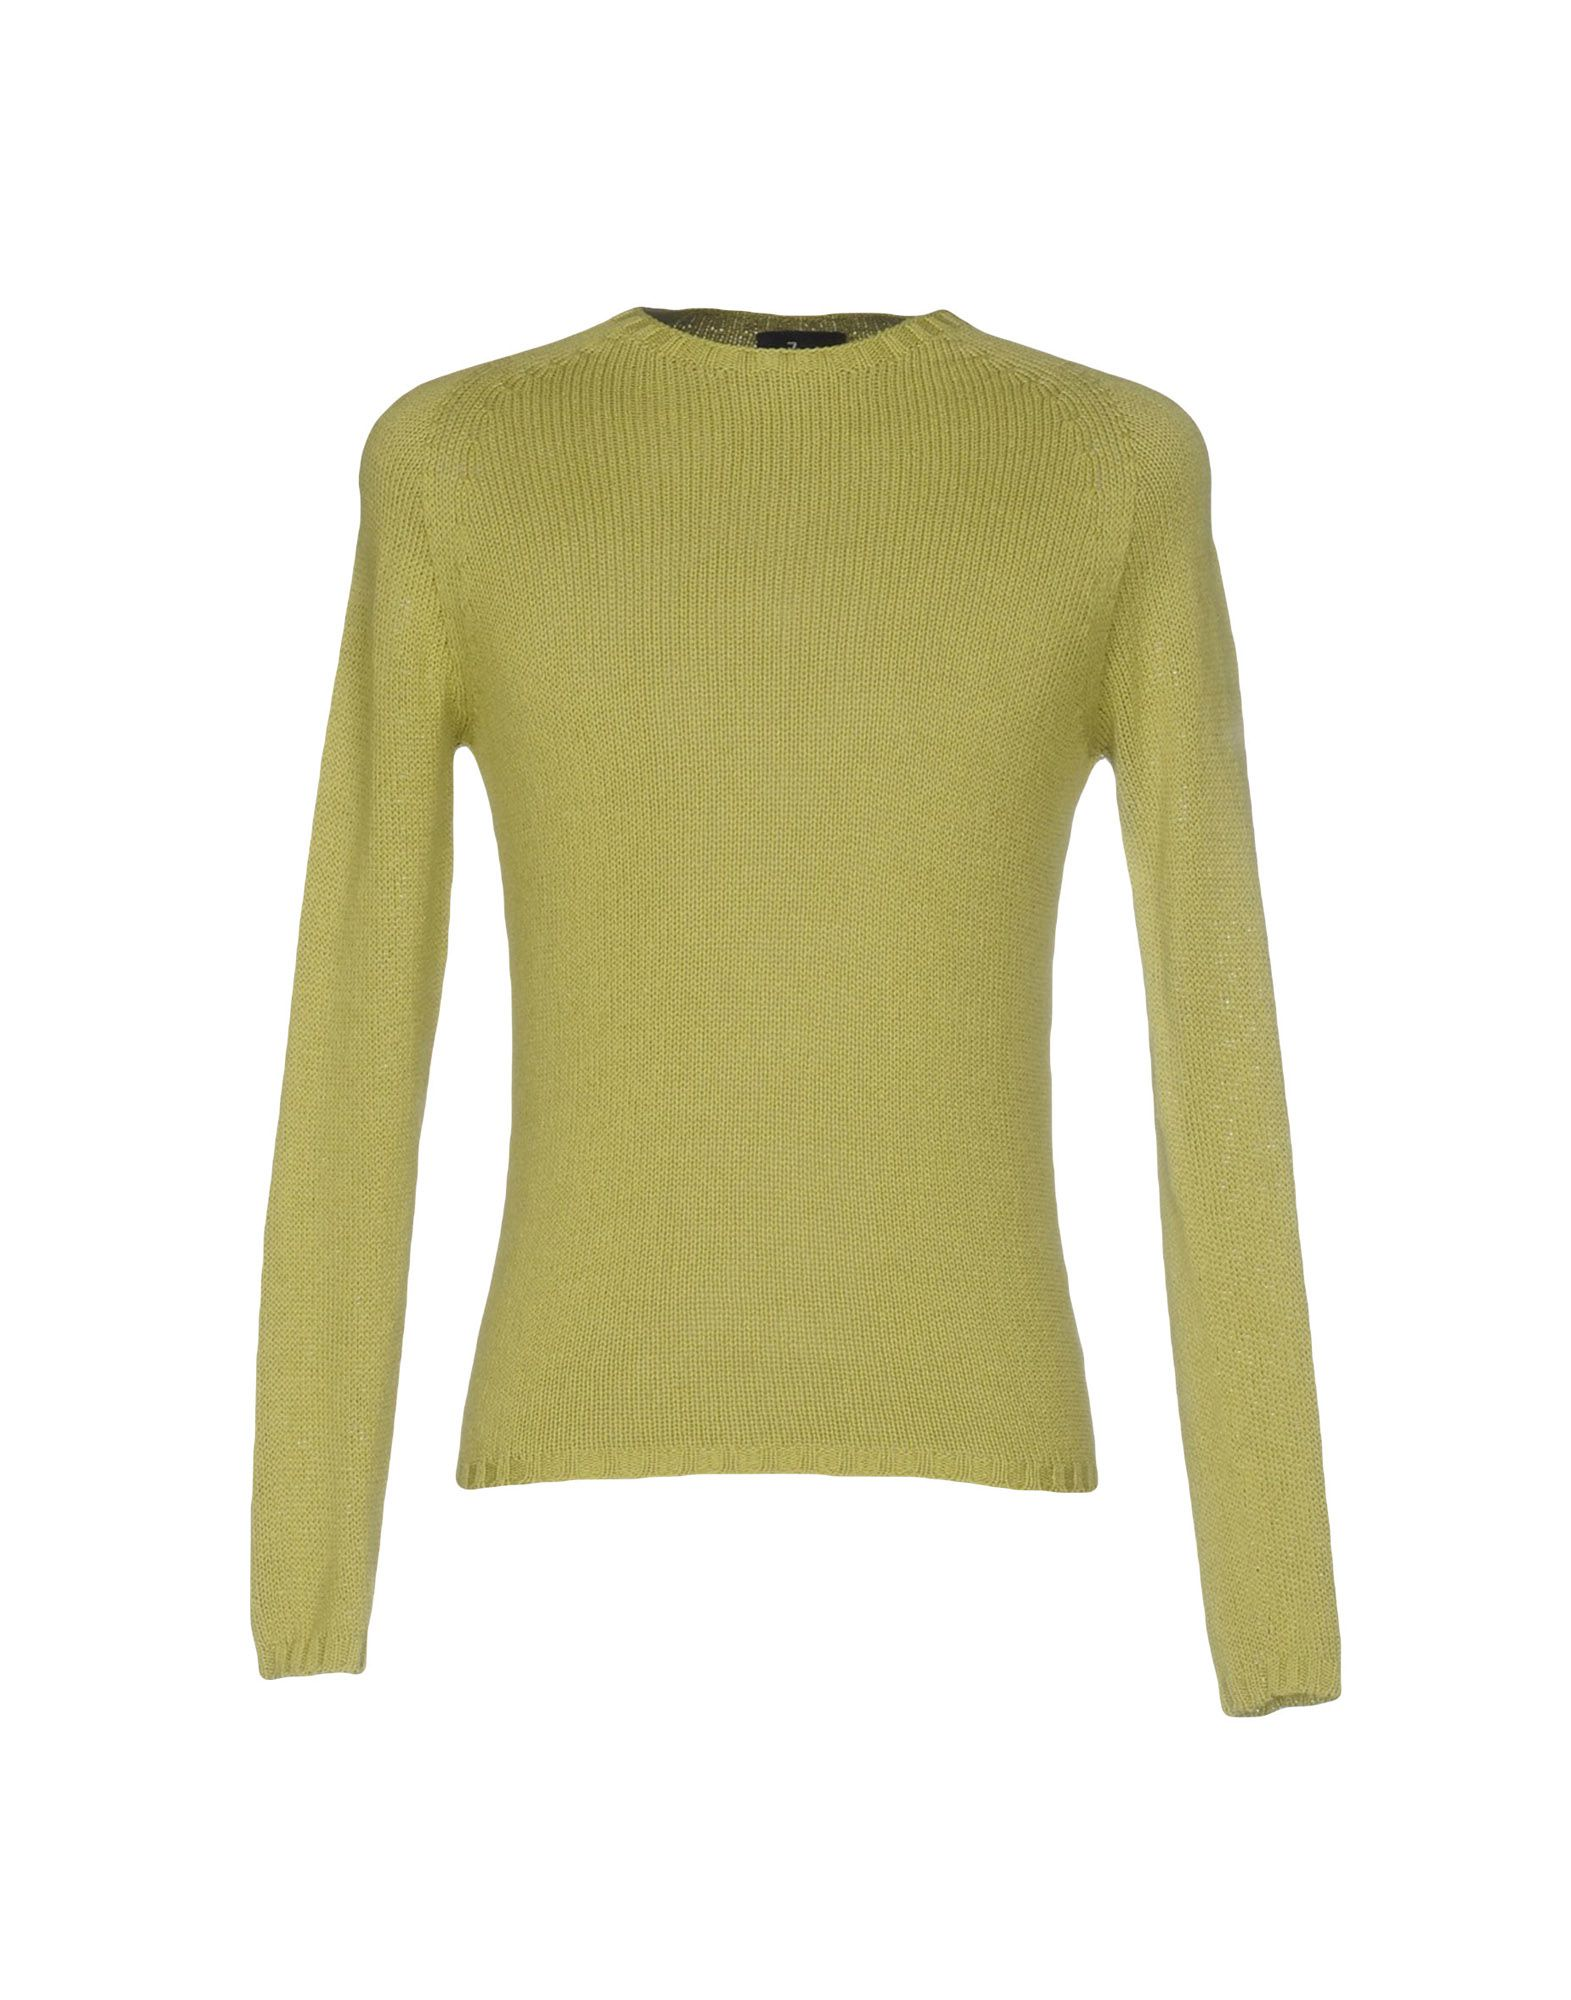 AIR JUMPER BY SCAGLIONE Sweaters